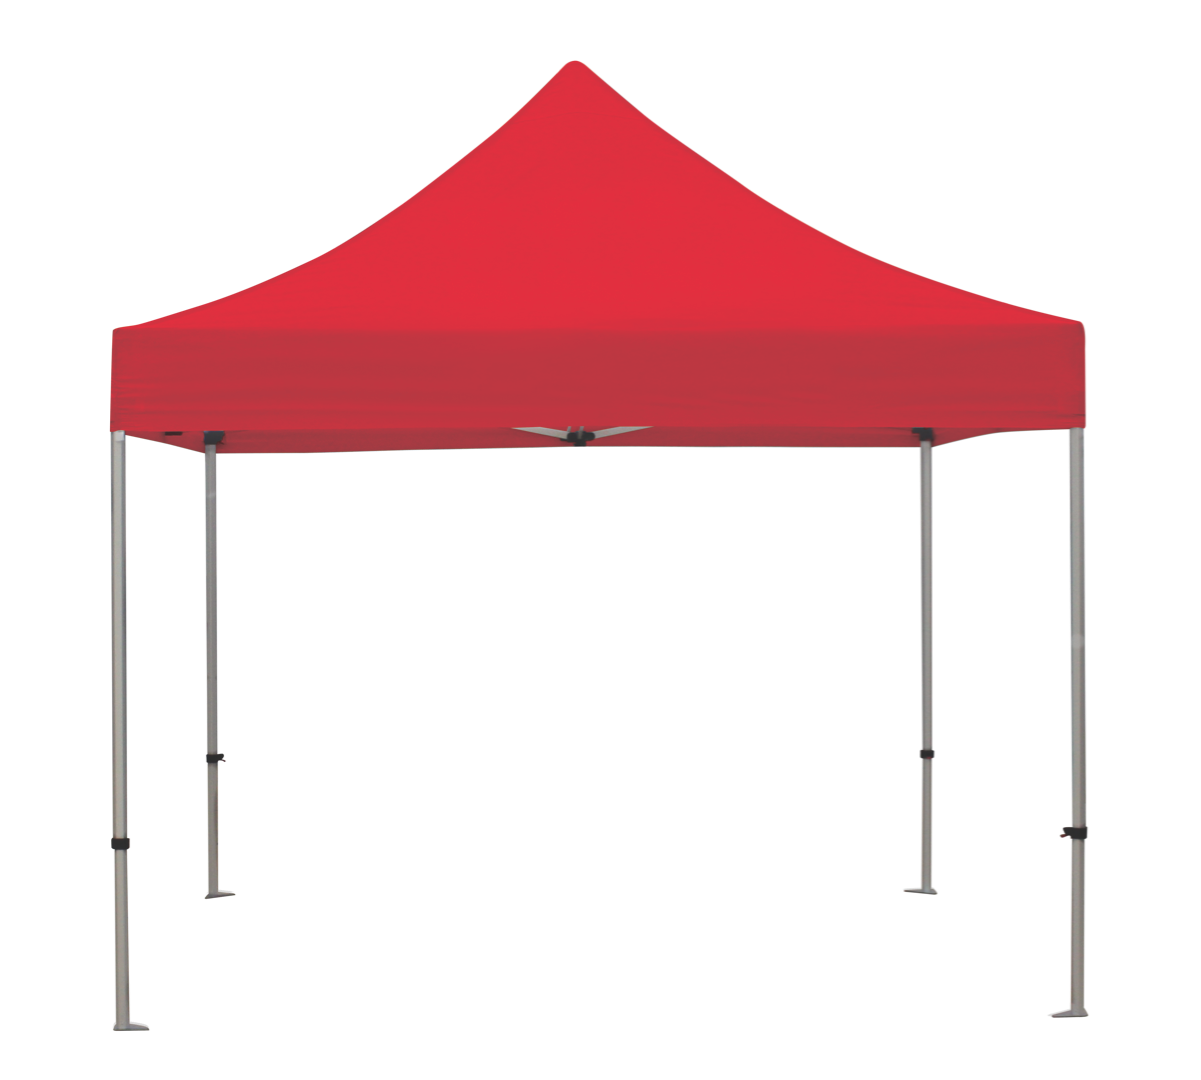 Clipart tent canopy. Outdoor pop up designs